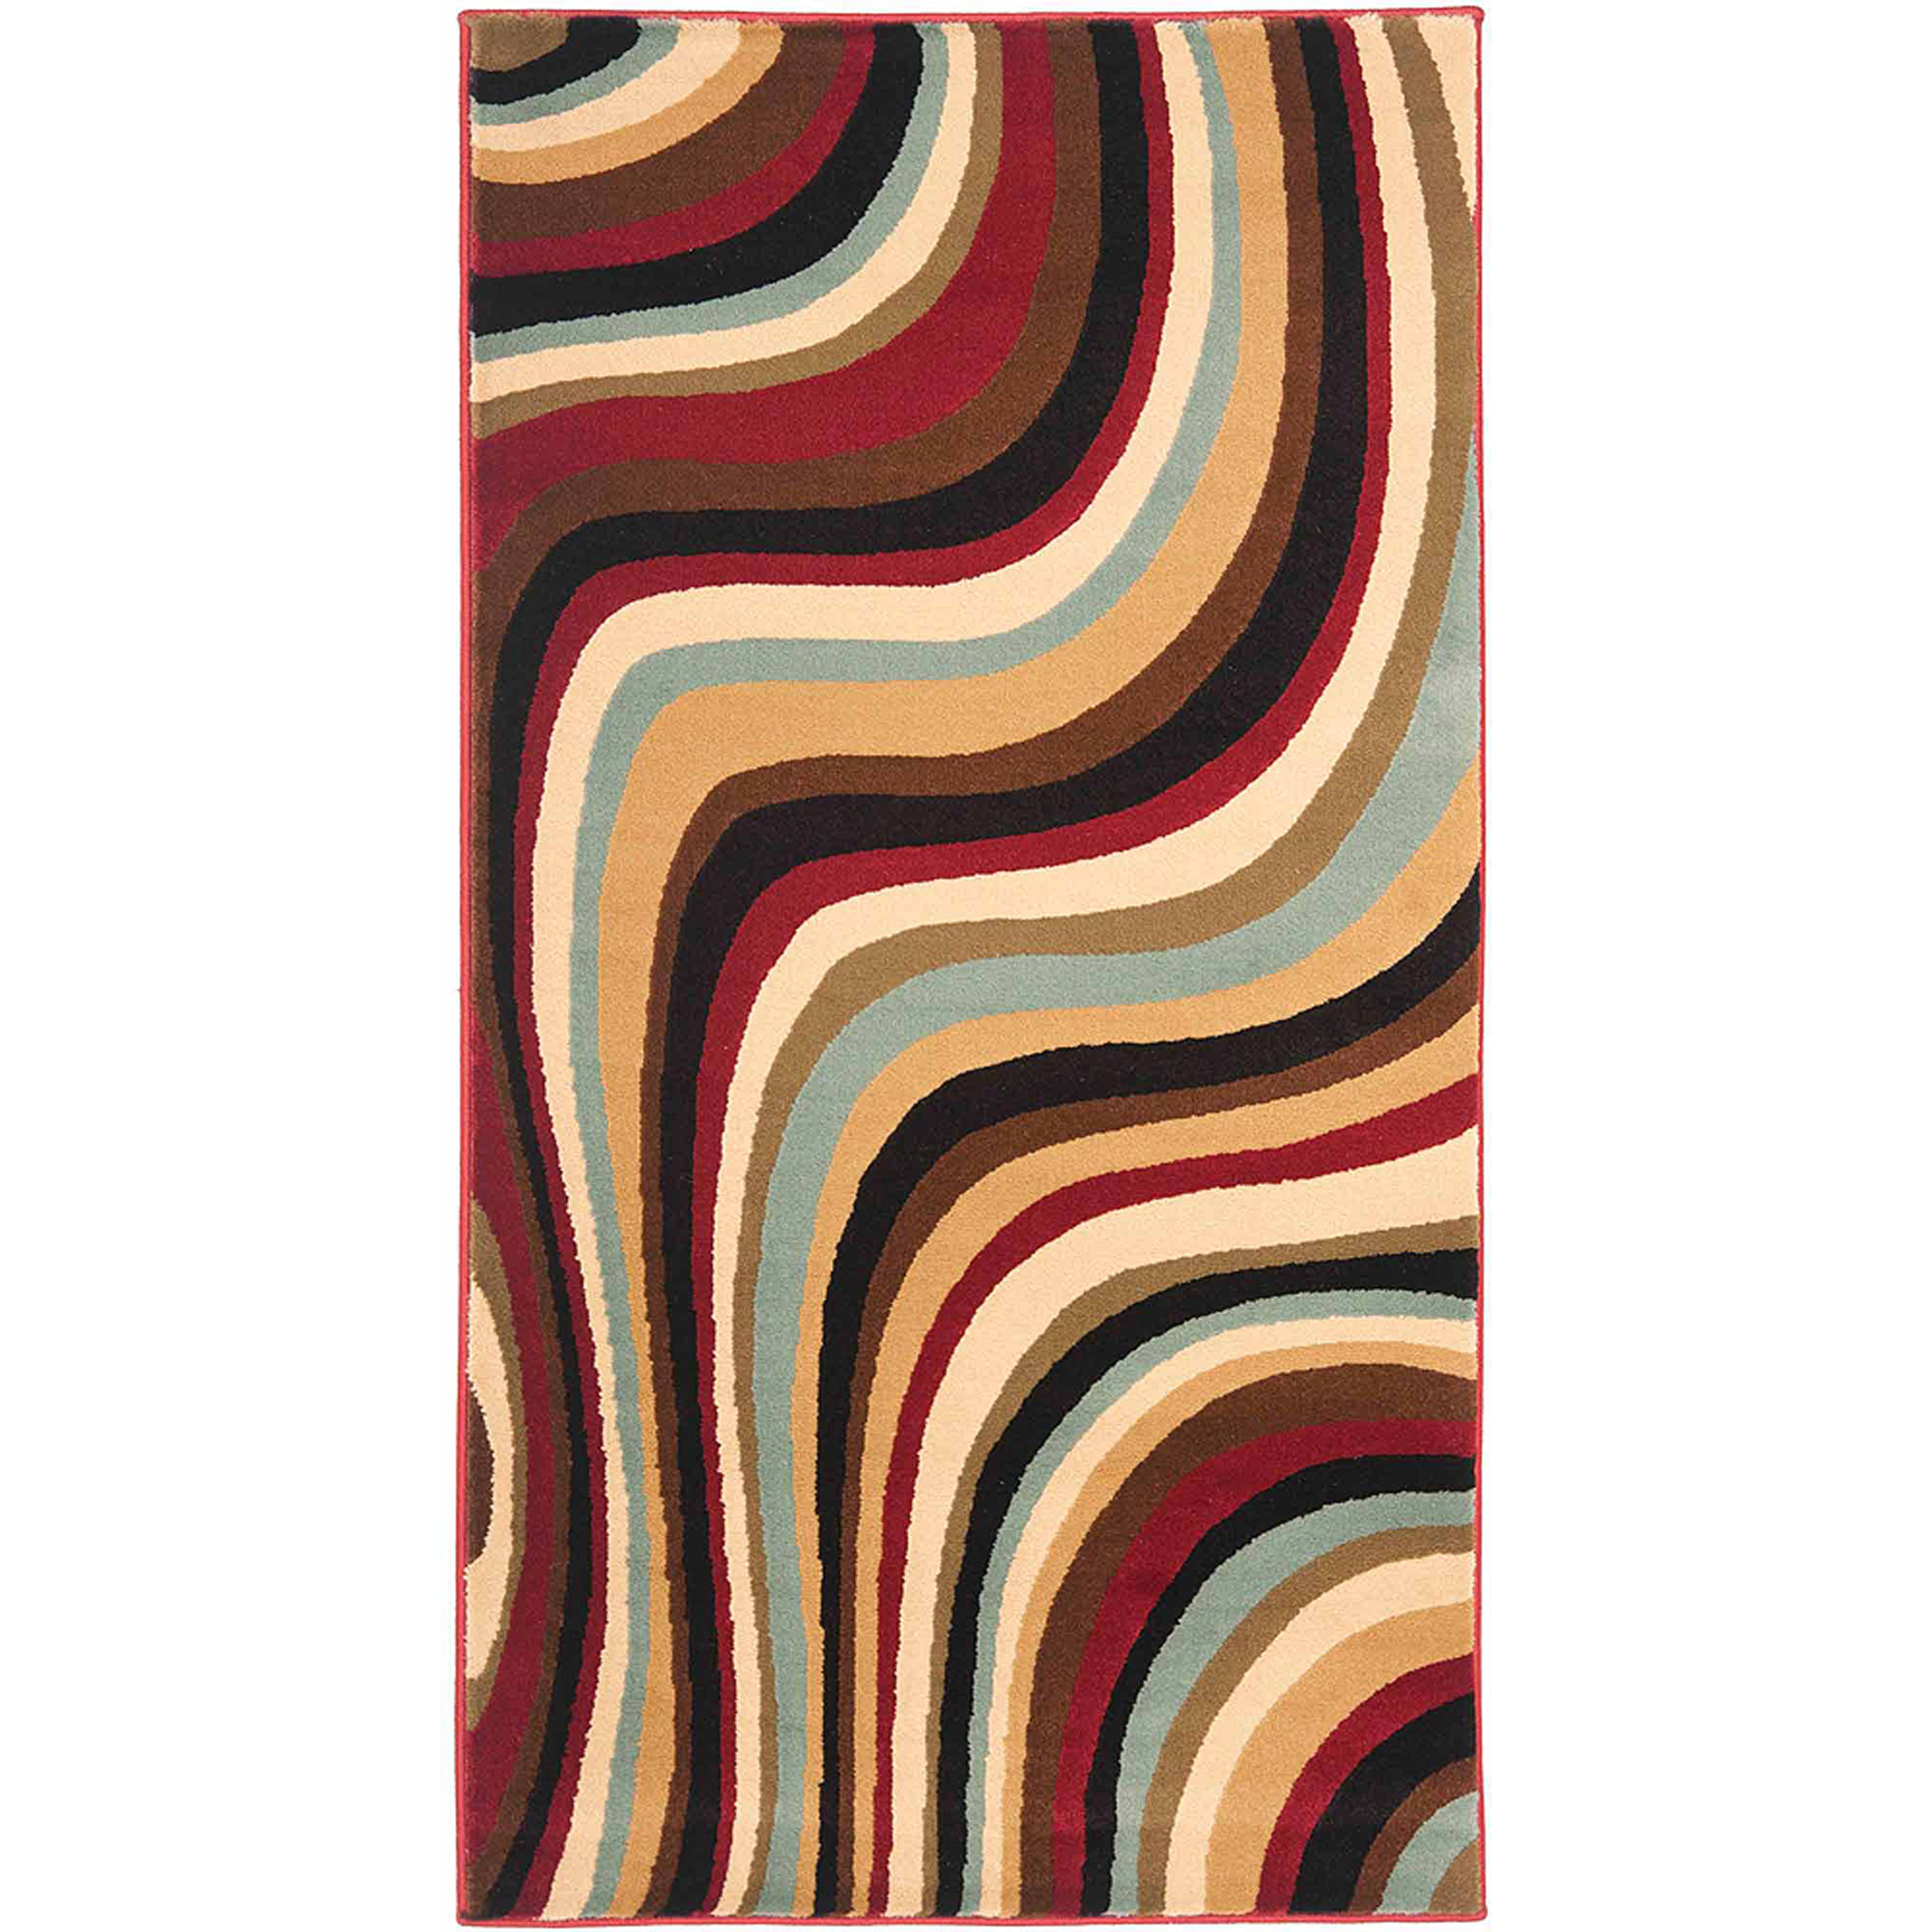 Safavieh Porcello Novello Abstract Lines Area Rug or Runner